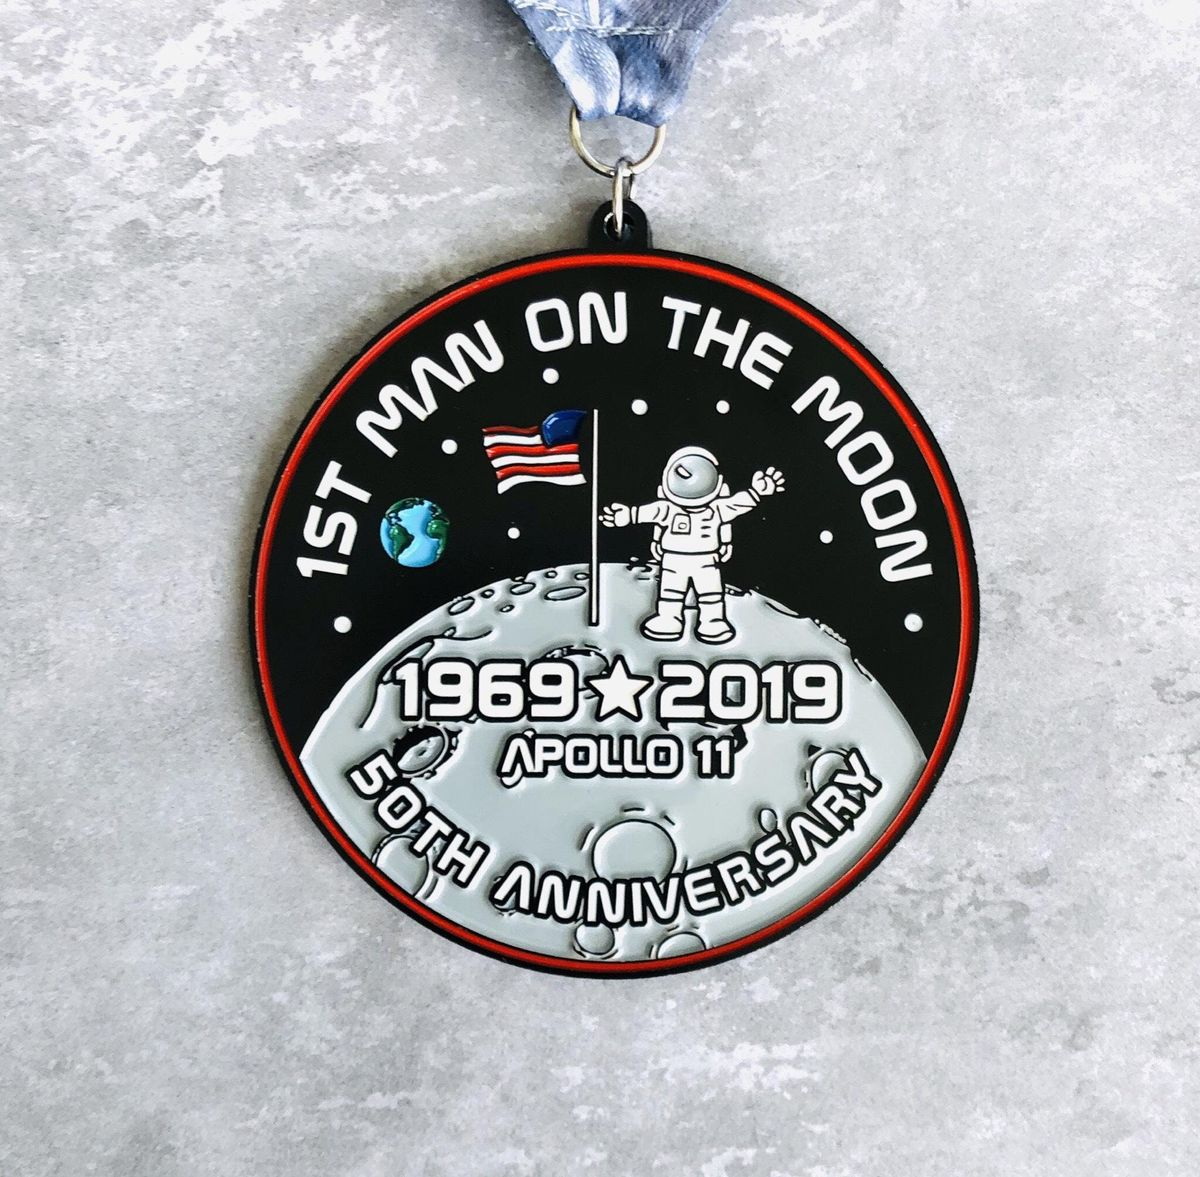 The First Man On The Moon 1 Mile 5K 10K 13.1 26.2- Los Angeles